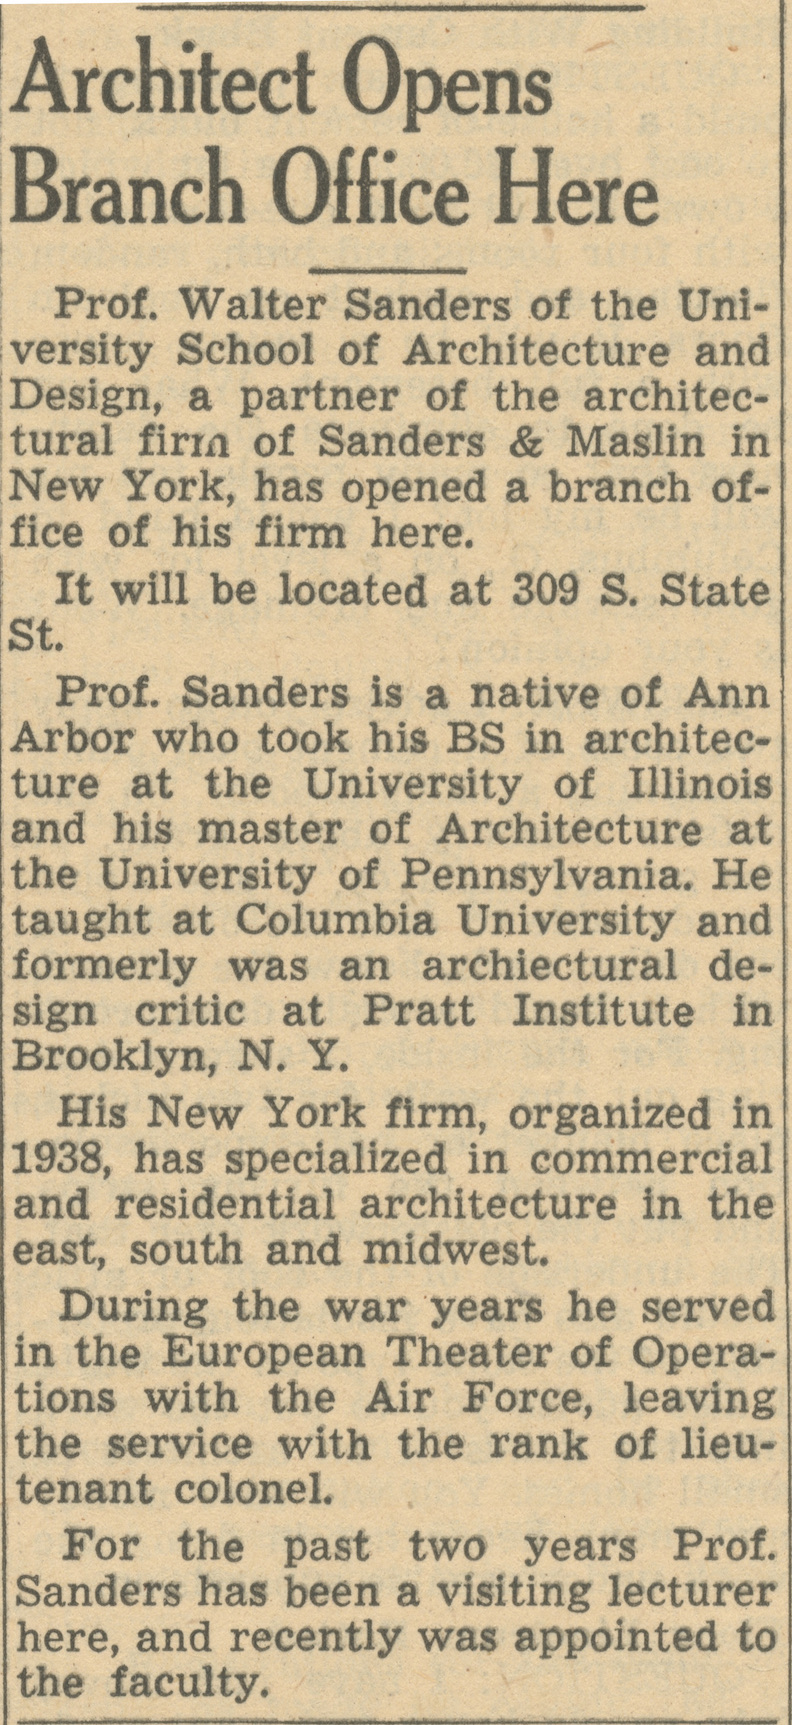 Architect Opens Branch Office Here image